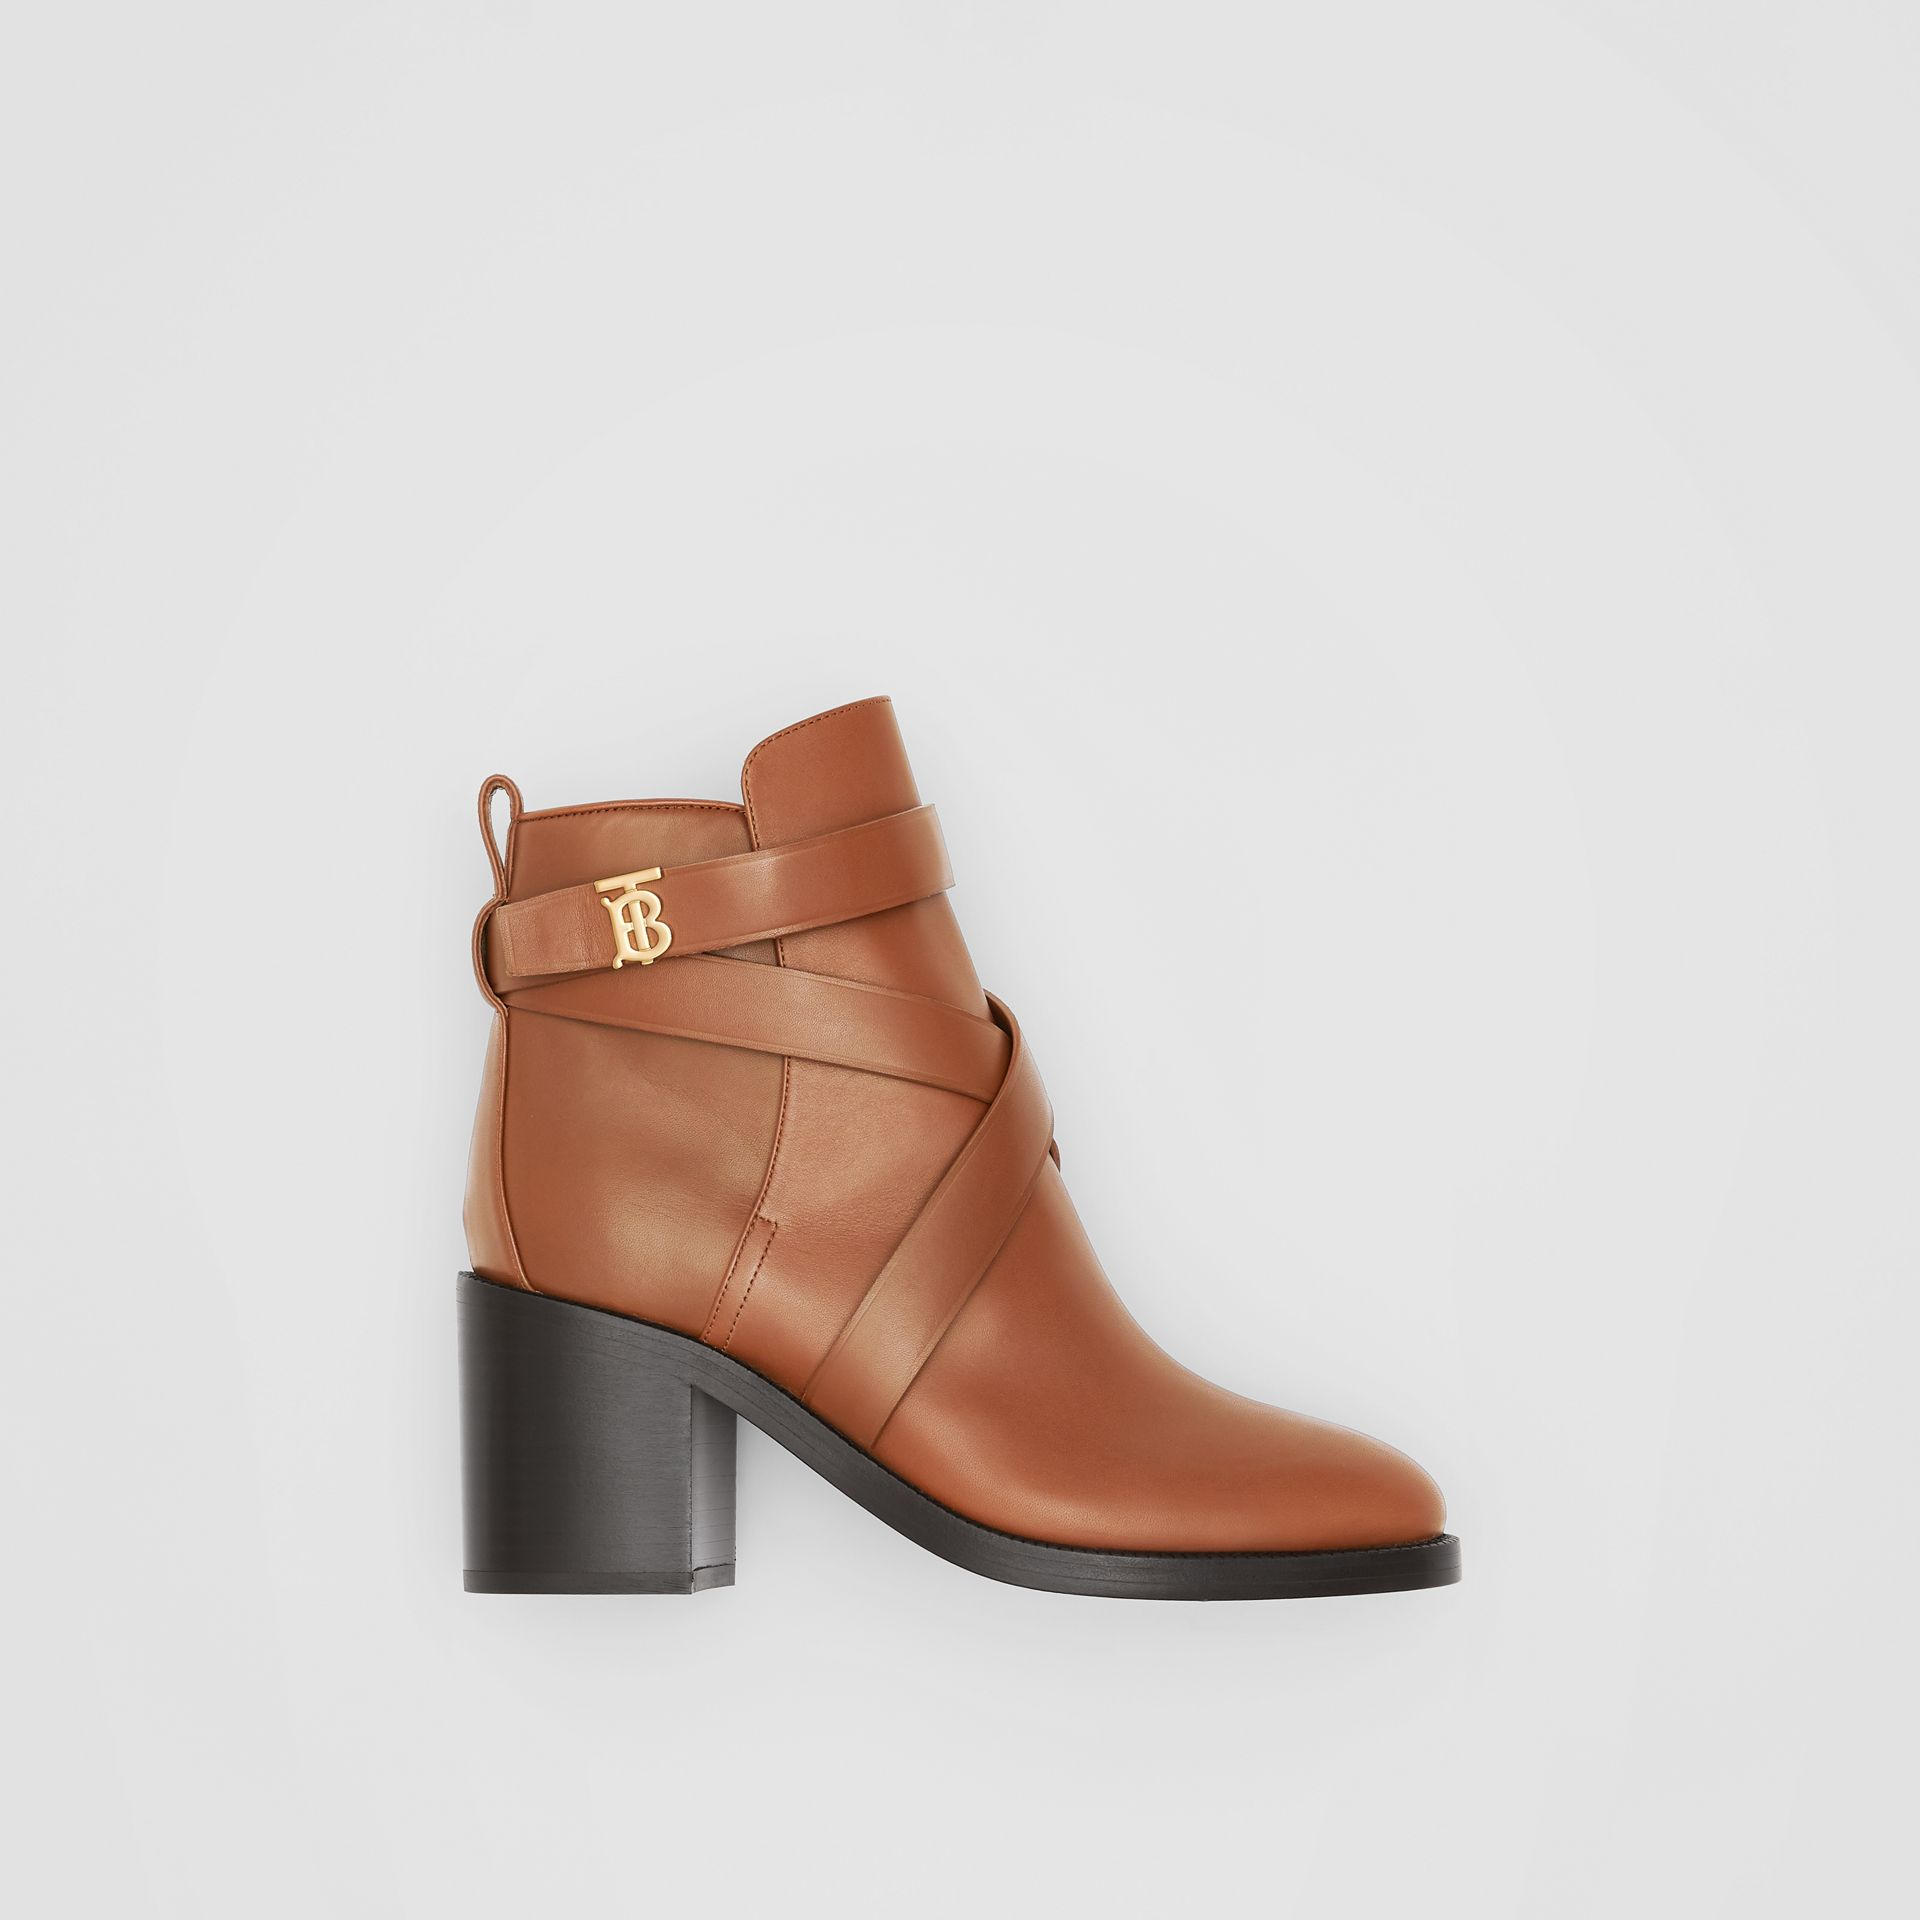 Bottines en cuir Monogram (Hâle) - Femme | Burberry Canada - photo de la galerie 0